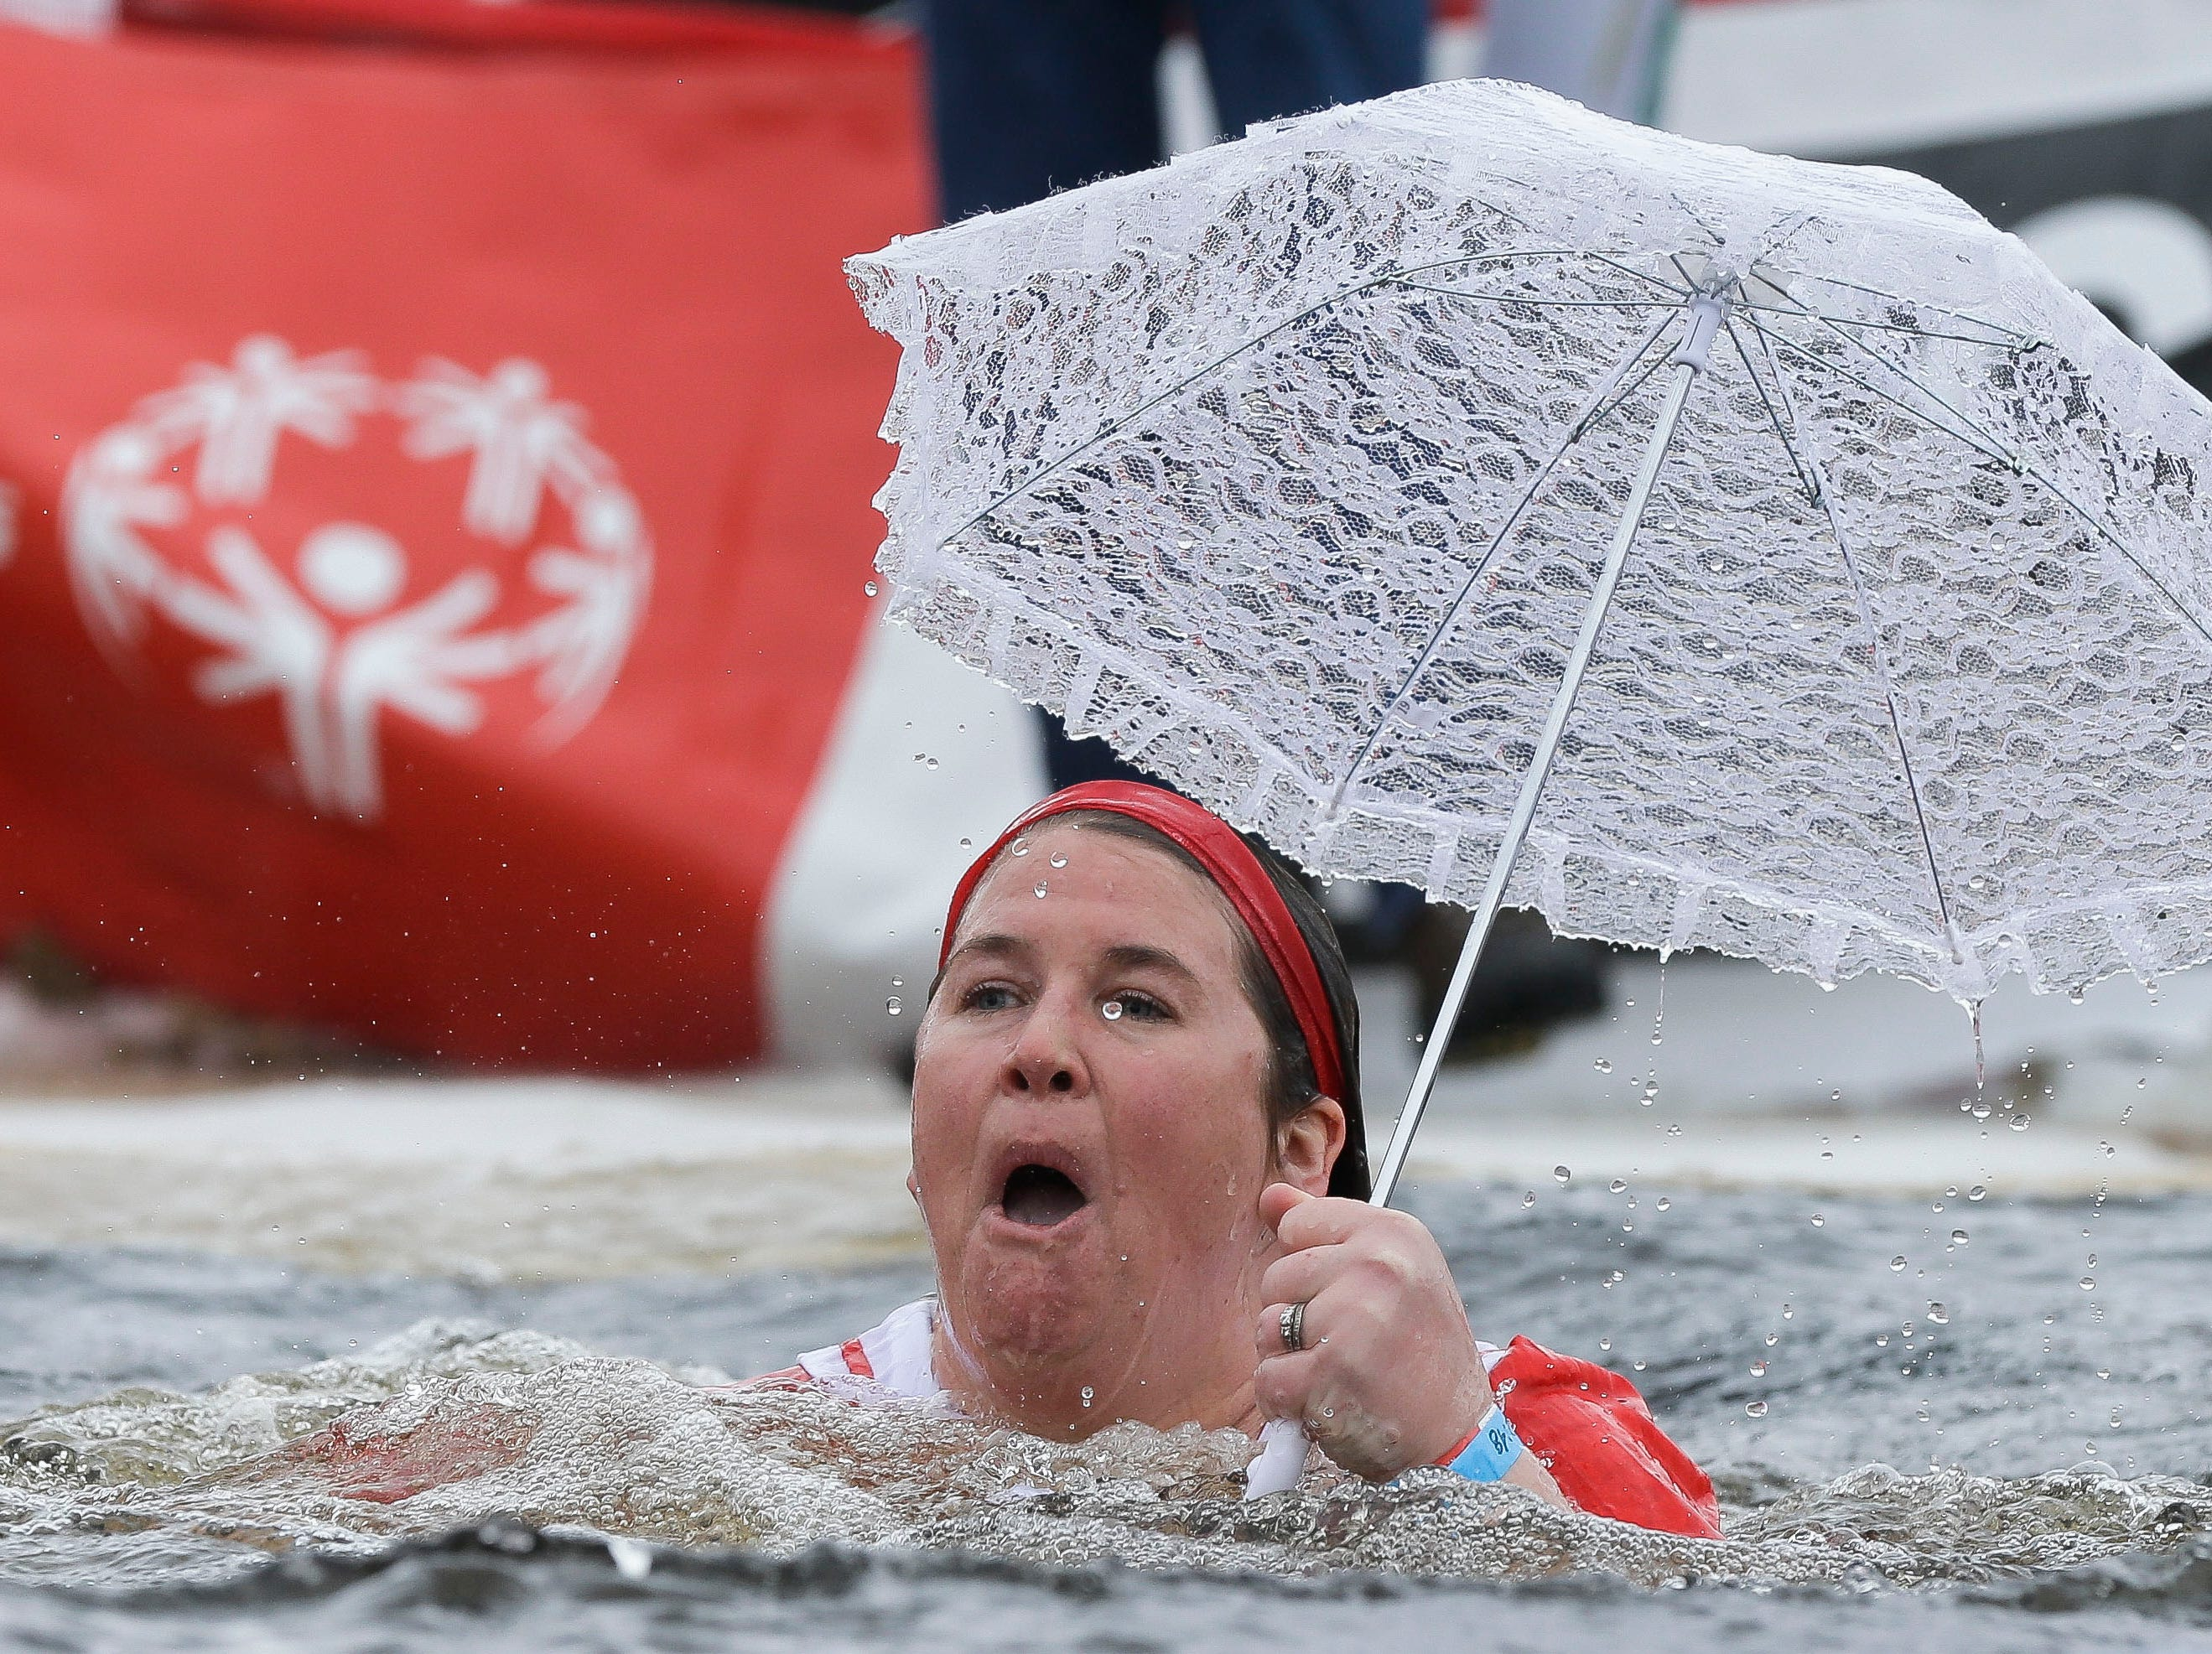 A participant heads to water's edge after taking the polar plunge on Saturday, February 2, 2019, at Anchor Bay Bar and Grill in Biron, Wis. The event was one of many polar plunges across the state held as fundraisers for Special Olympics Wisconsin.Tork Mason/USA TODAY NETWORK-Wisconsin